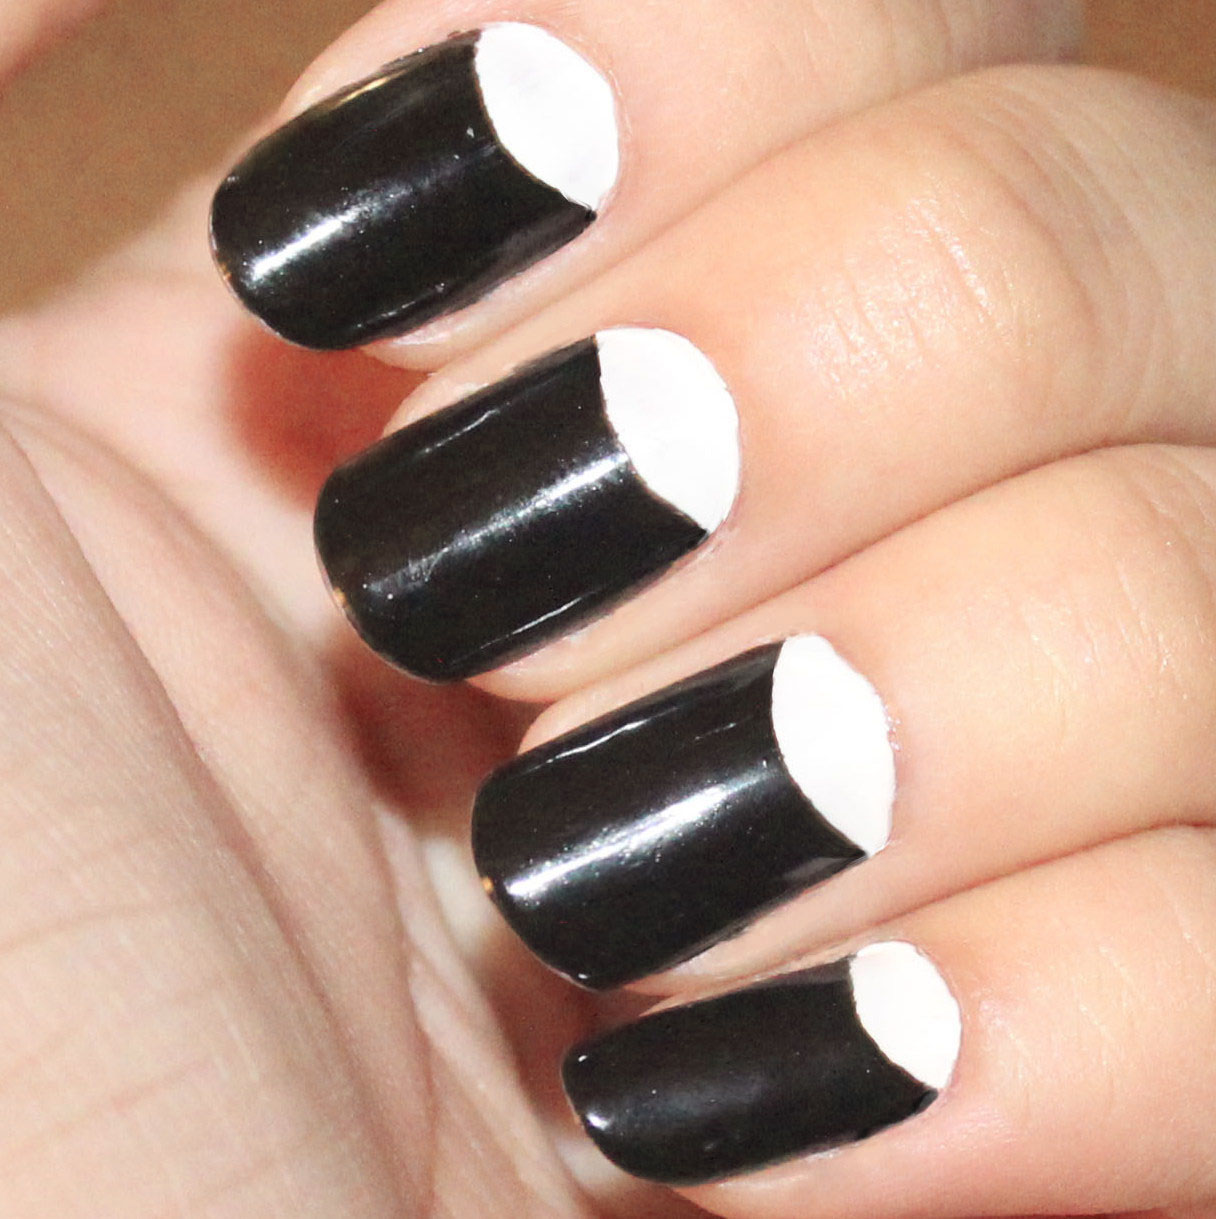 Nails With Half Moon